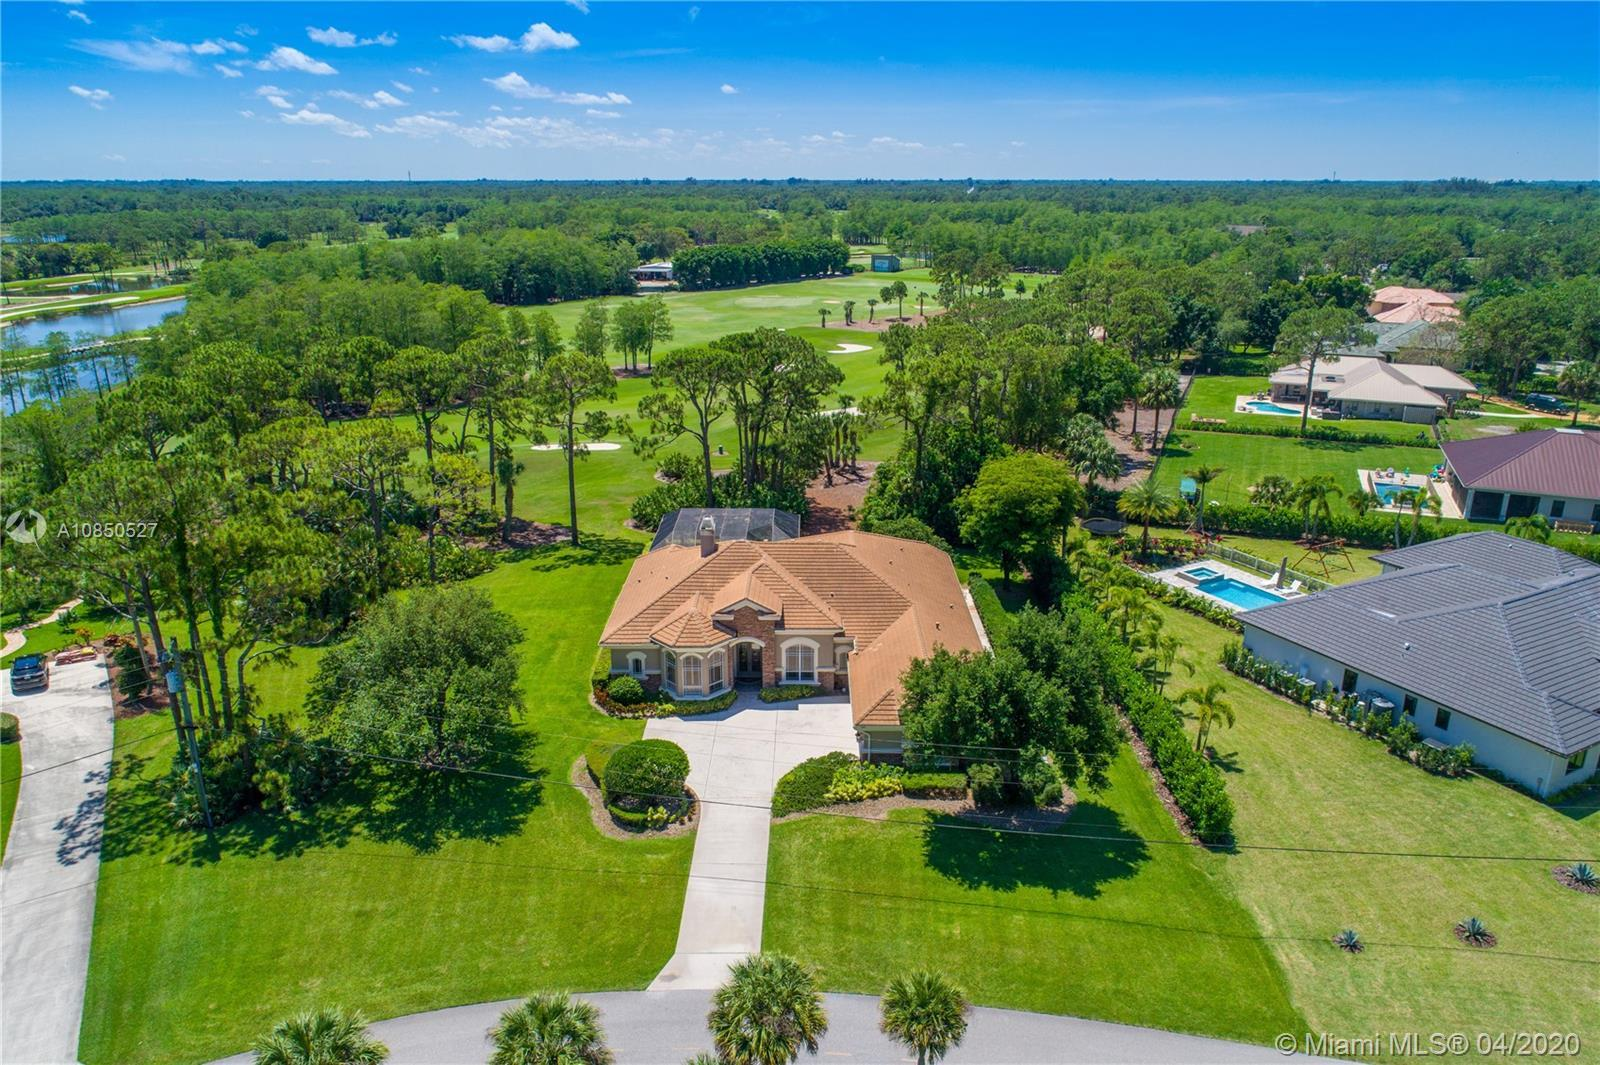 This great Arthur Rutenberg floor plan is located on just over one acre of land overlooking the firs